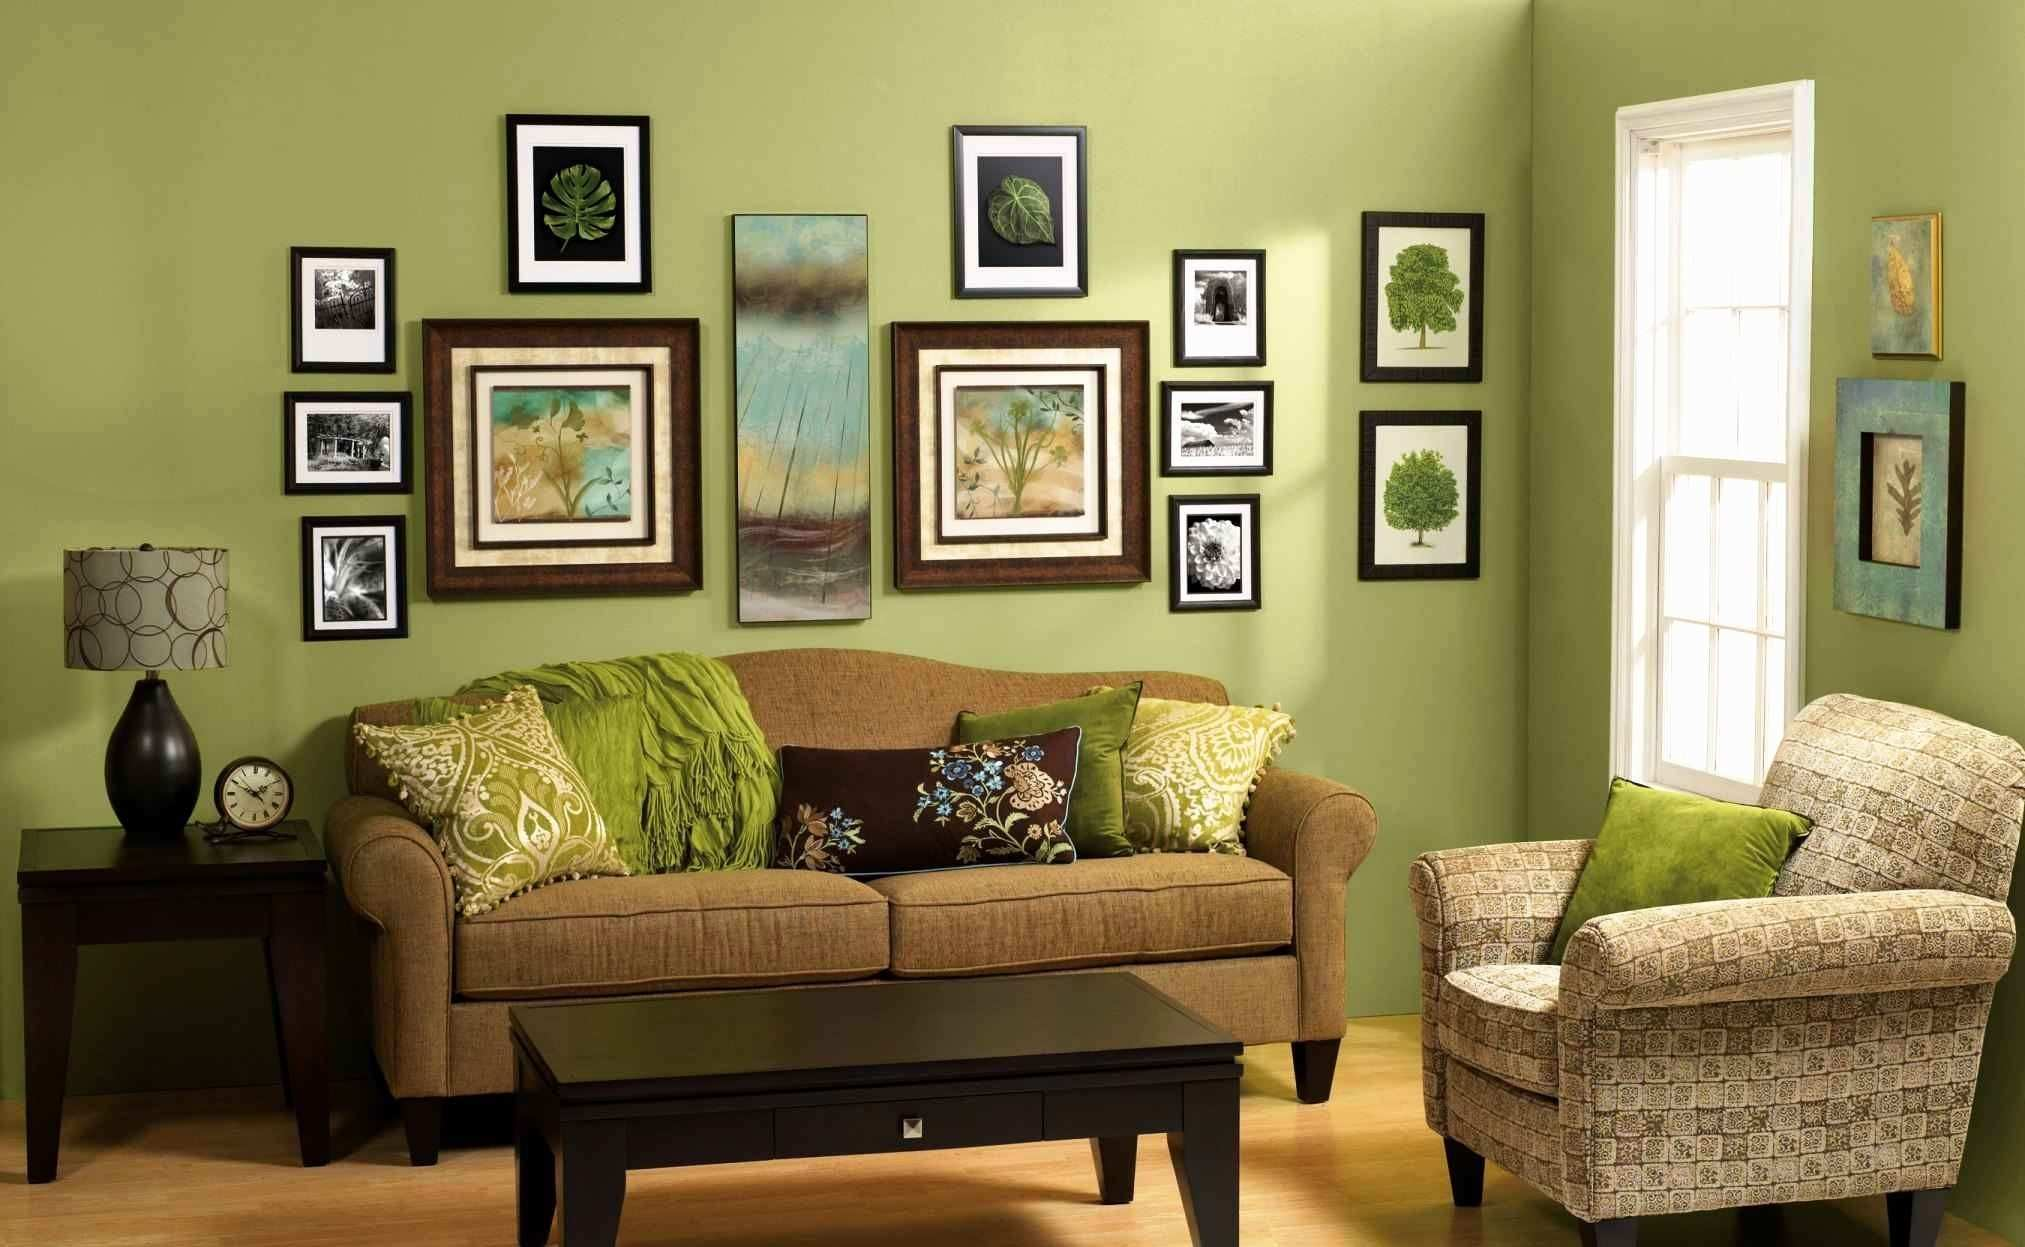 Decorating Ideas for Small Living Rooms Luxury Wall Decorations for